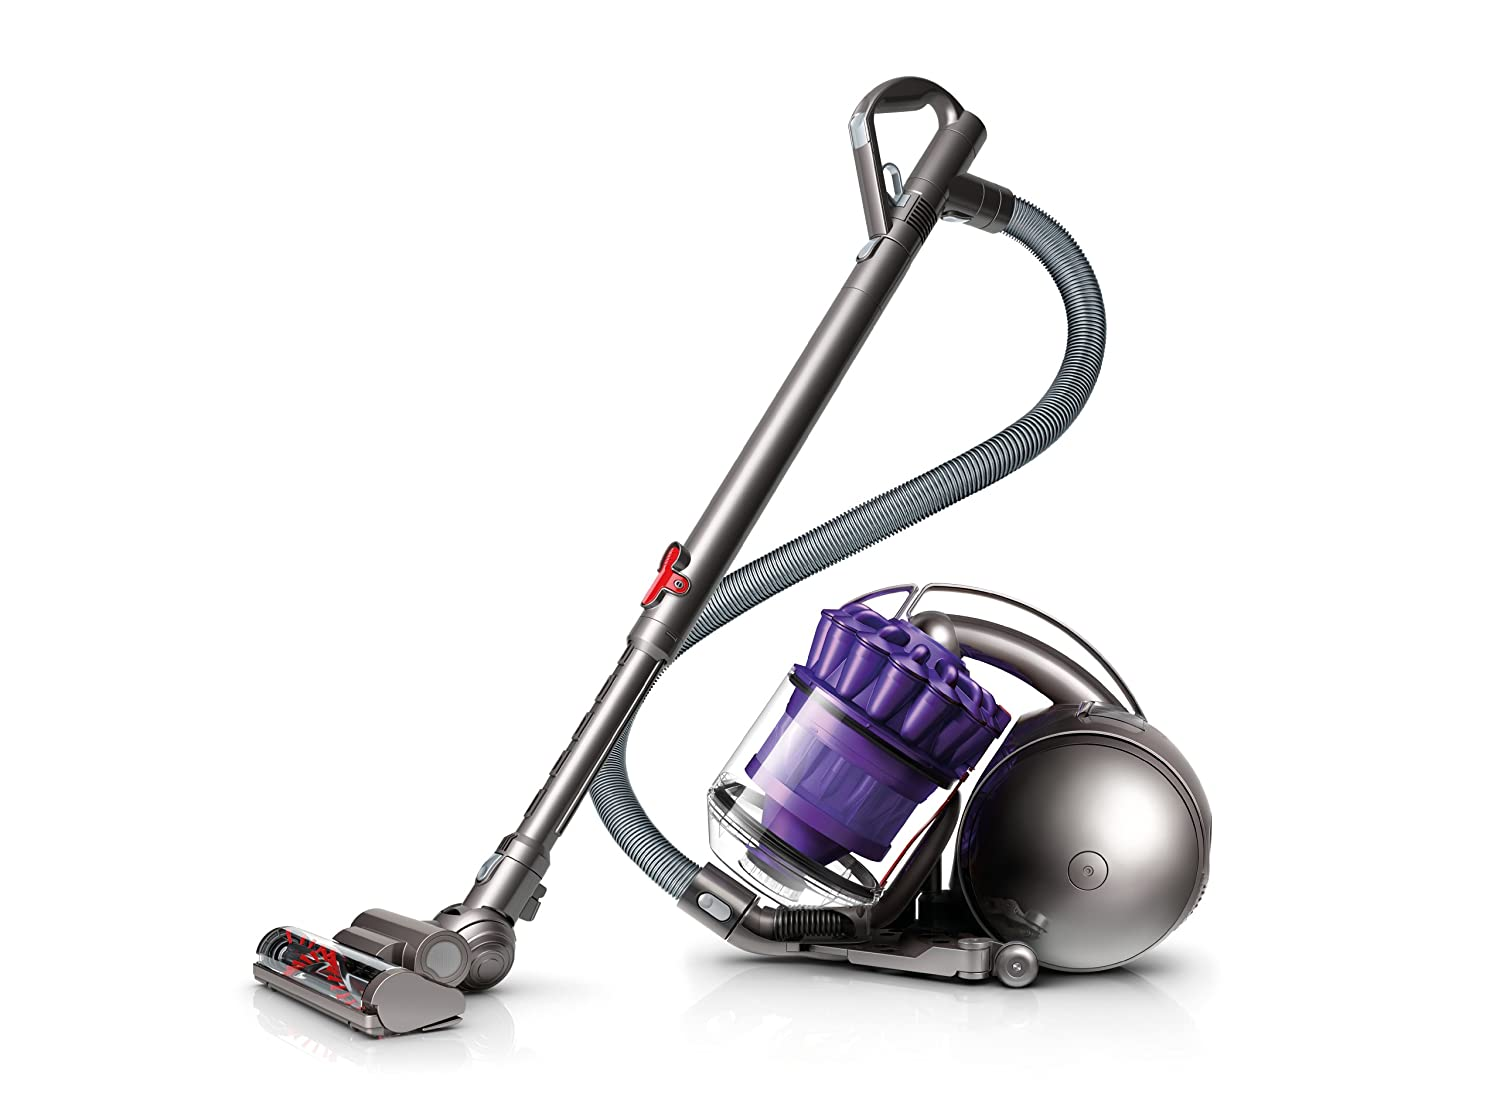 Shark Vacuum Models >> Shark vs Dyson - Which One Is Best For You? - Pet Hair Vacuum Critic